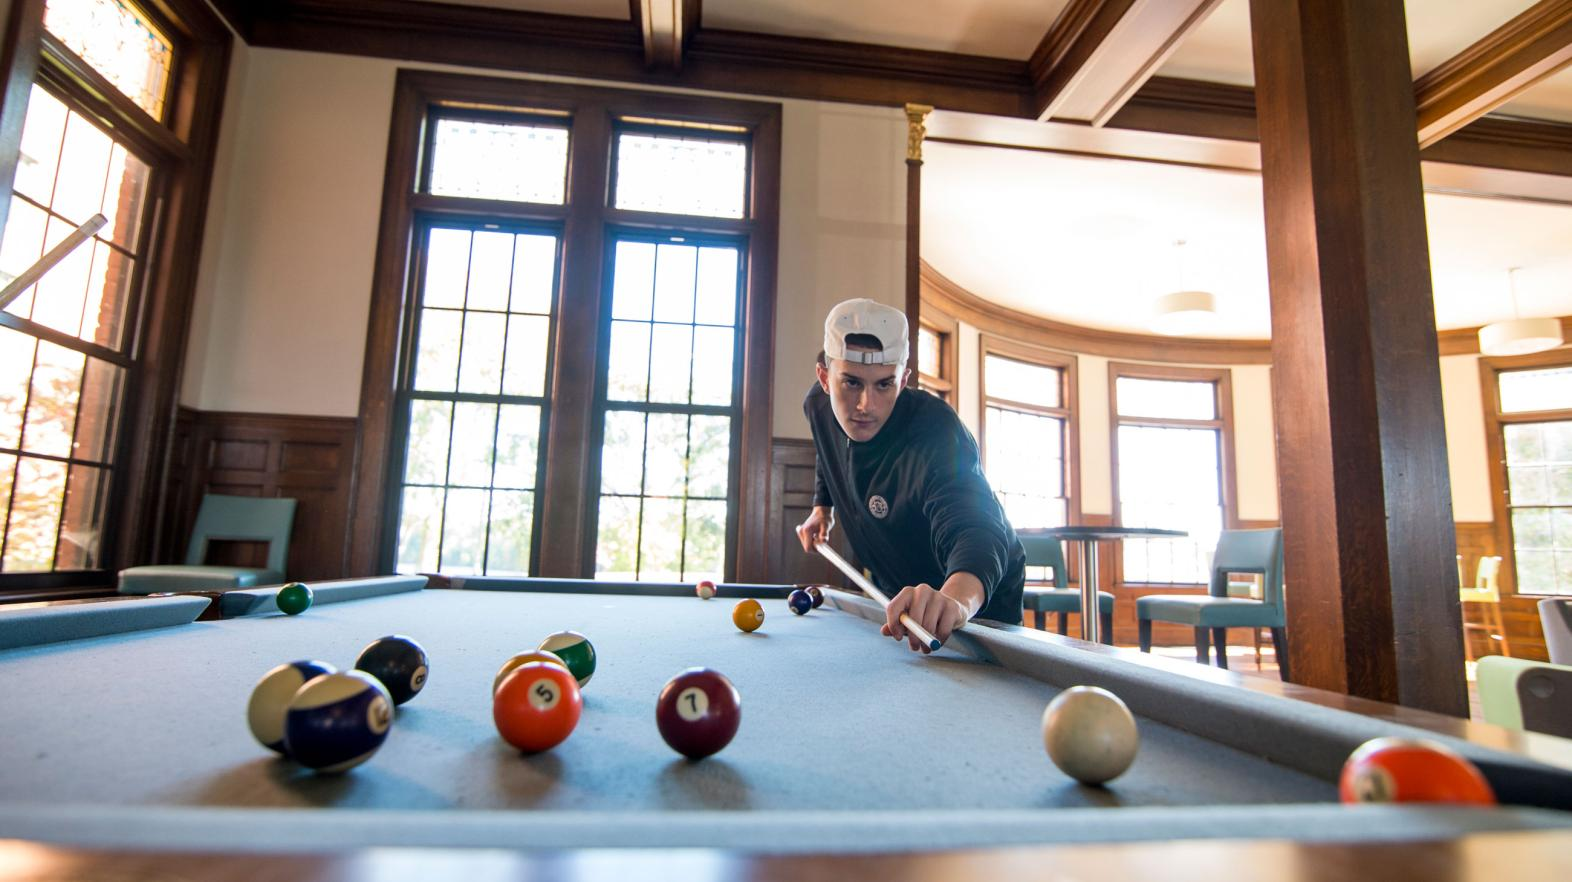 A student plays pool in Carlisle Foyer in the Alumni Hall residence hall.